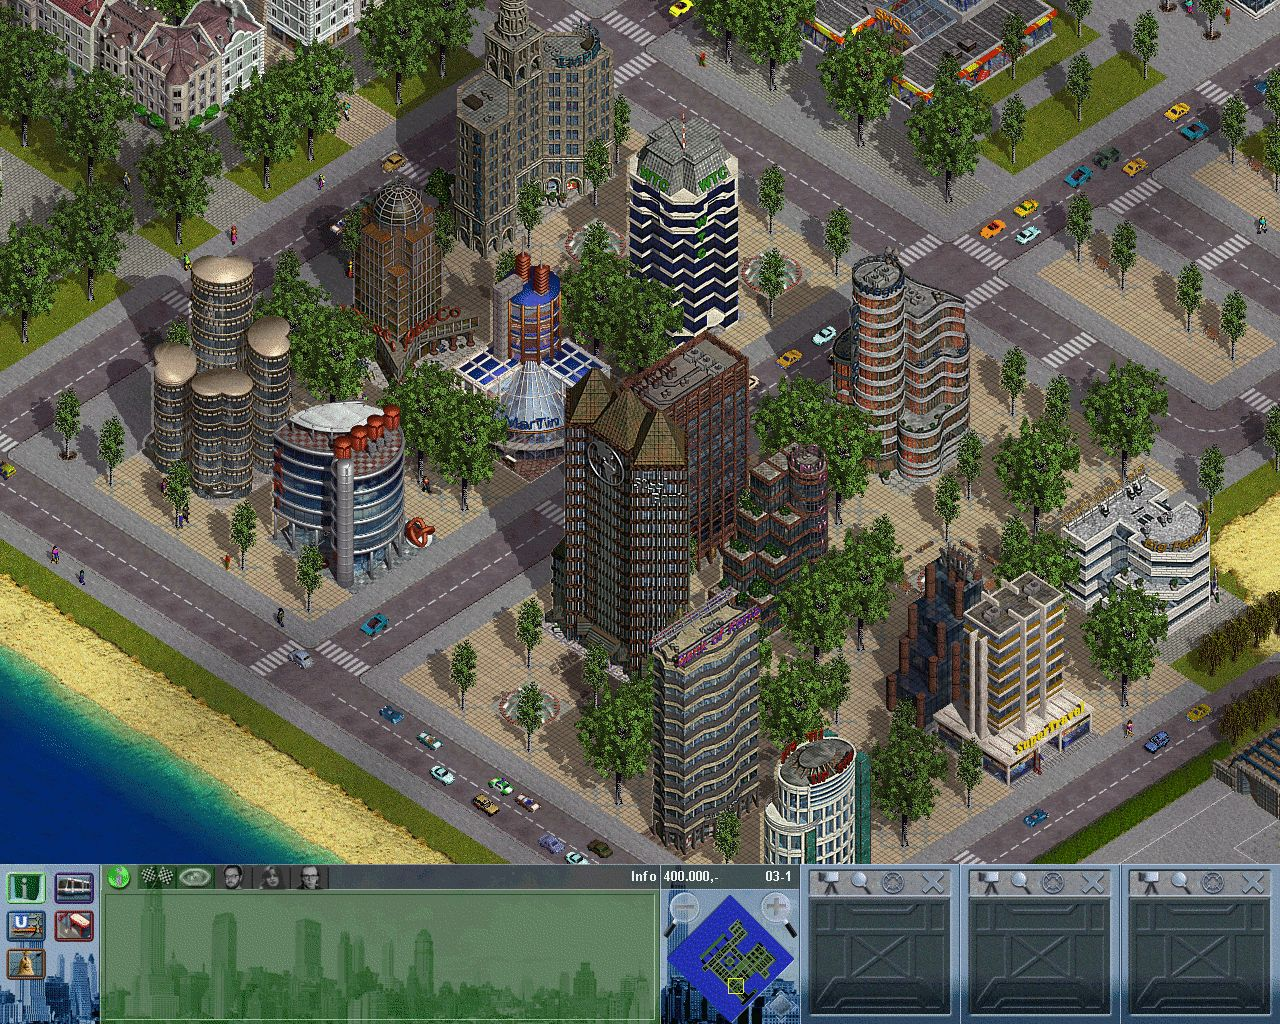 2. Screen Bahia Blanca